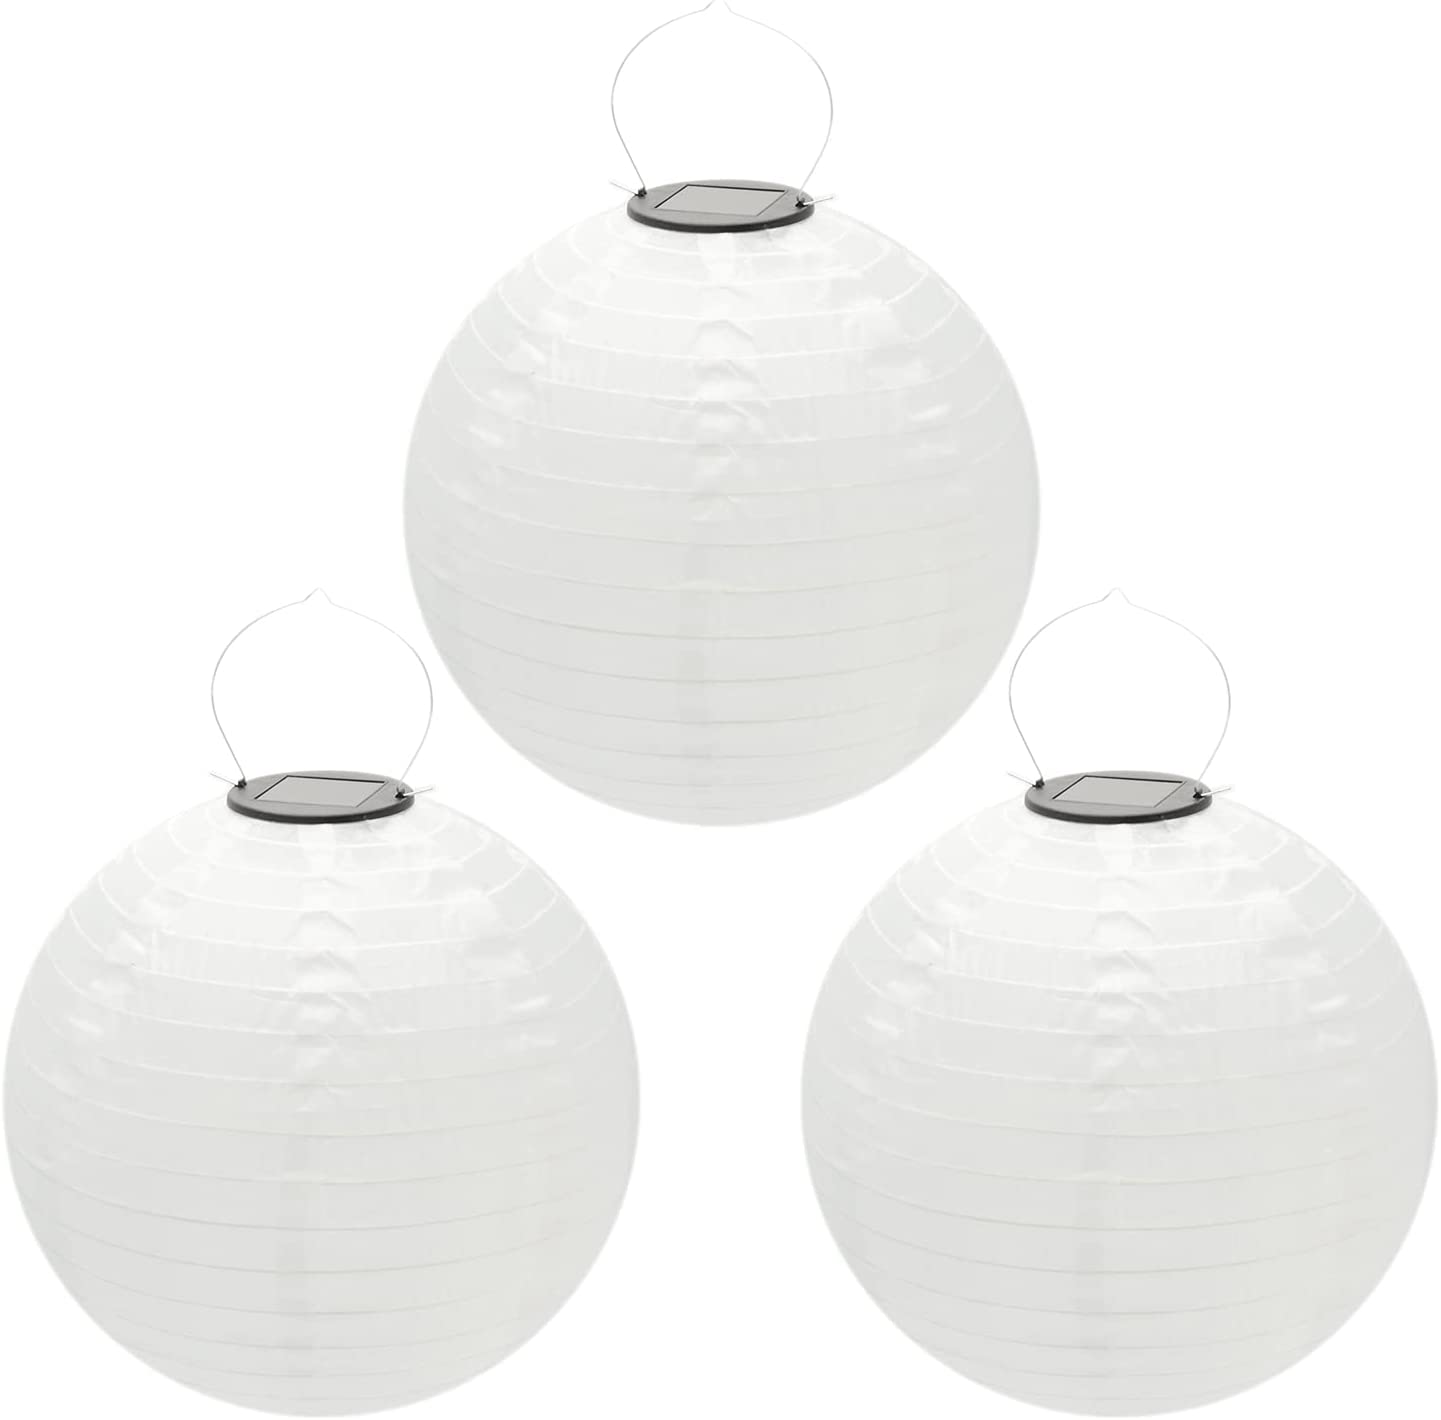 Beaneyun 5 ☆ very popular Solar Chinese Lantern Lights Super beauty product restock quality top! 3 Round 12 Pack inch